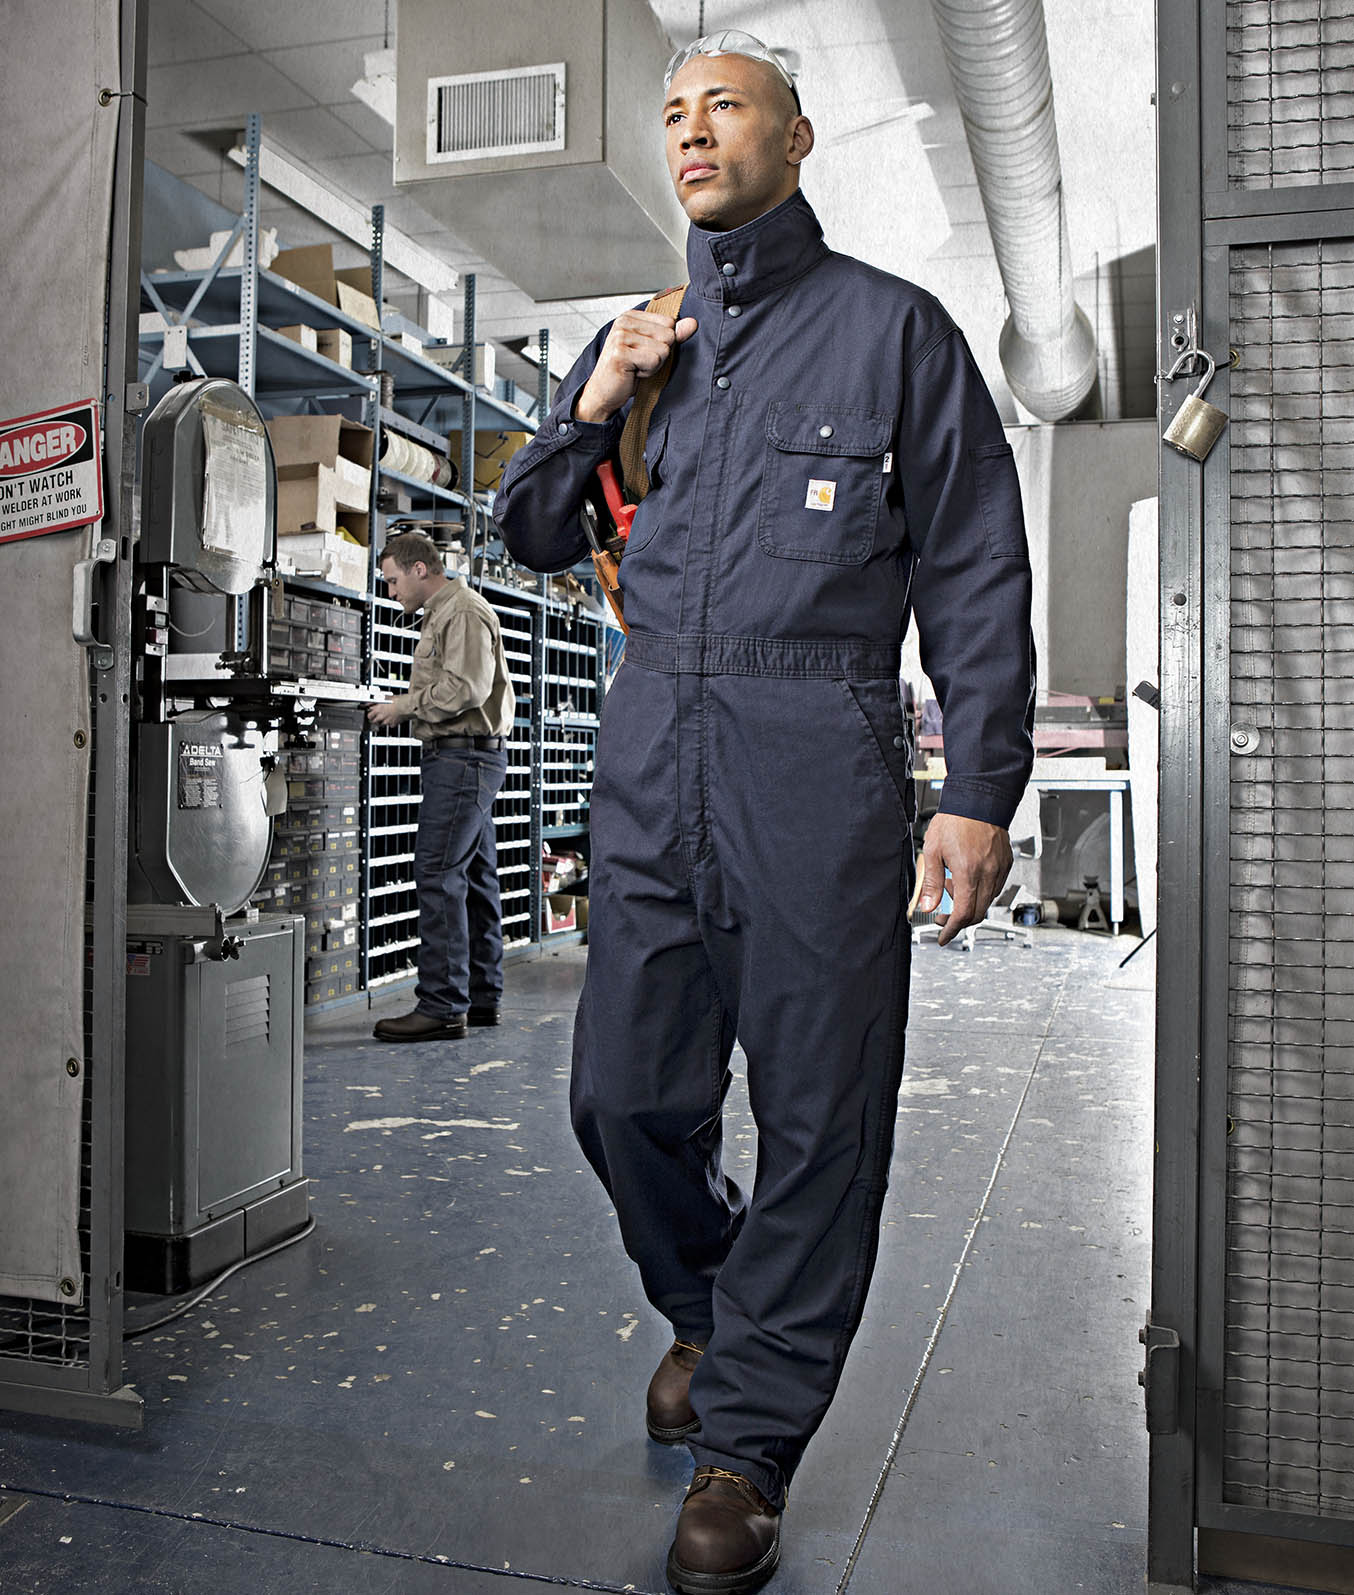 Worker in dark blue flame resistant coveralls